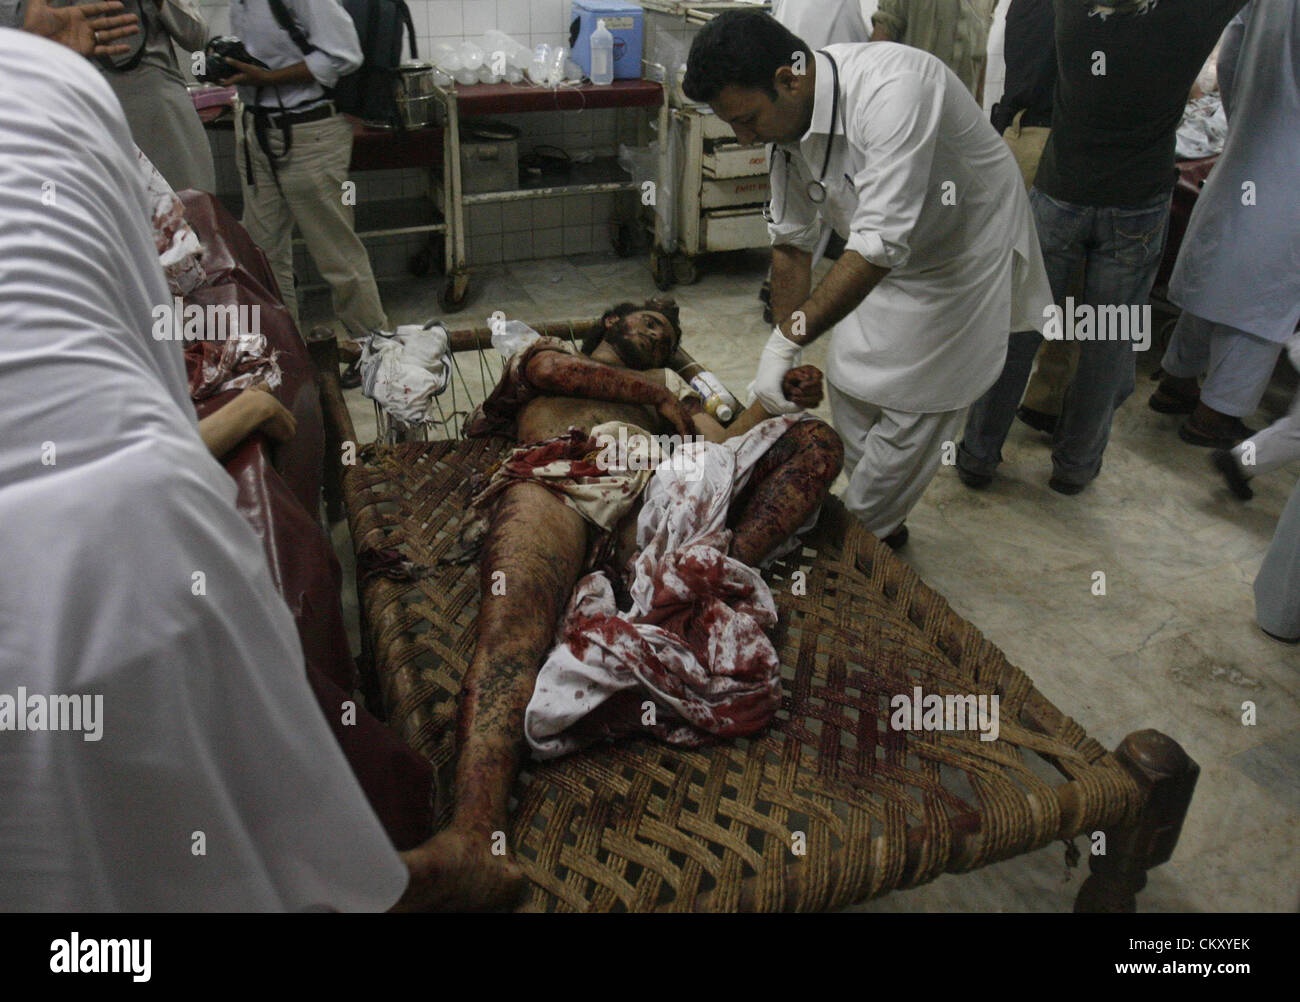 Paramedics busy in treatment of a bomb blast injures in Lady Reading hospital. A blast occurred in Matni Market - Stock Image